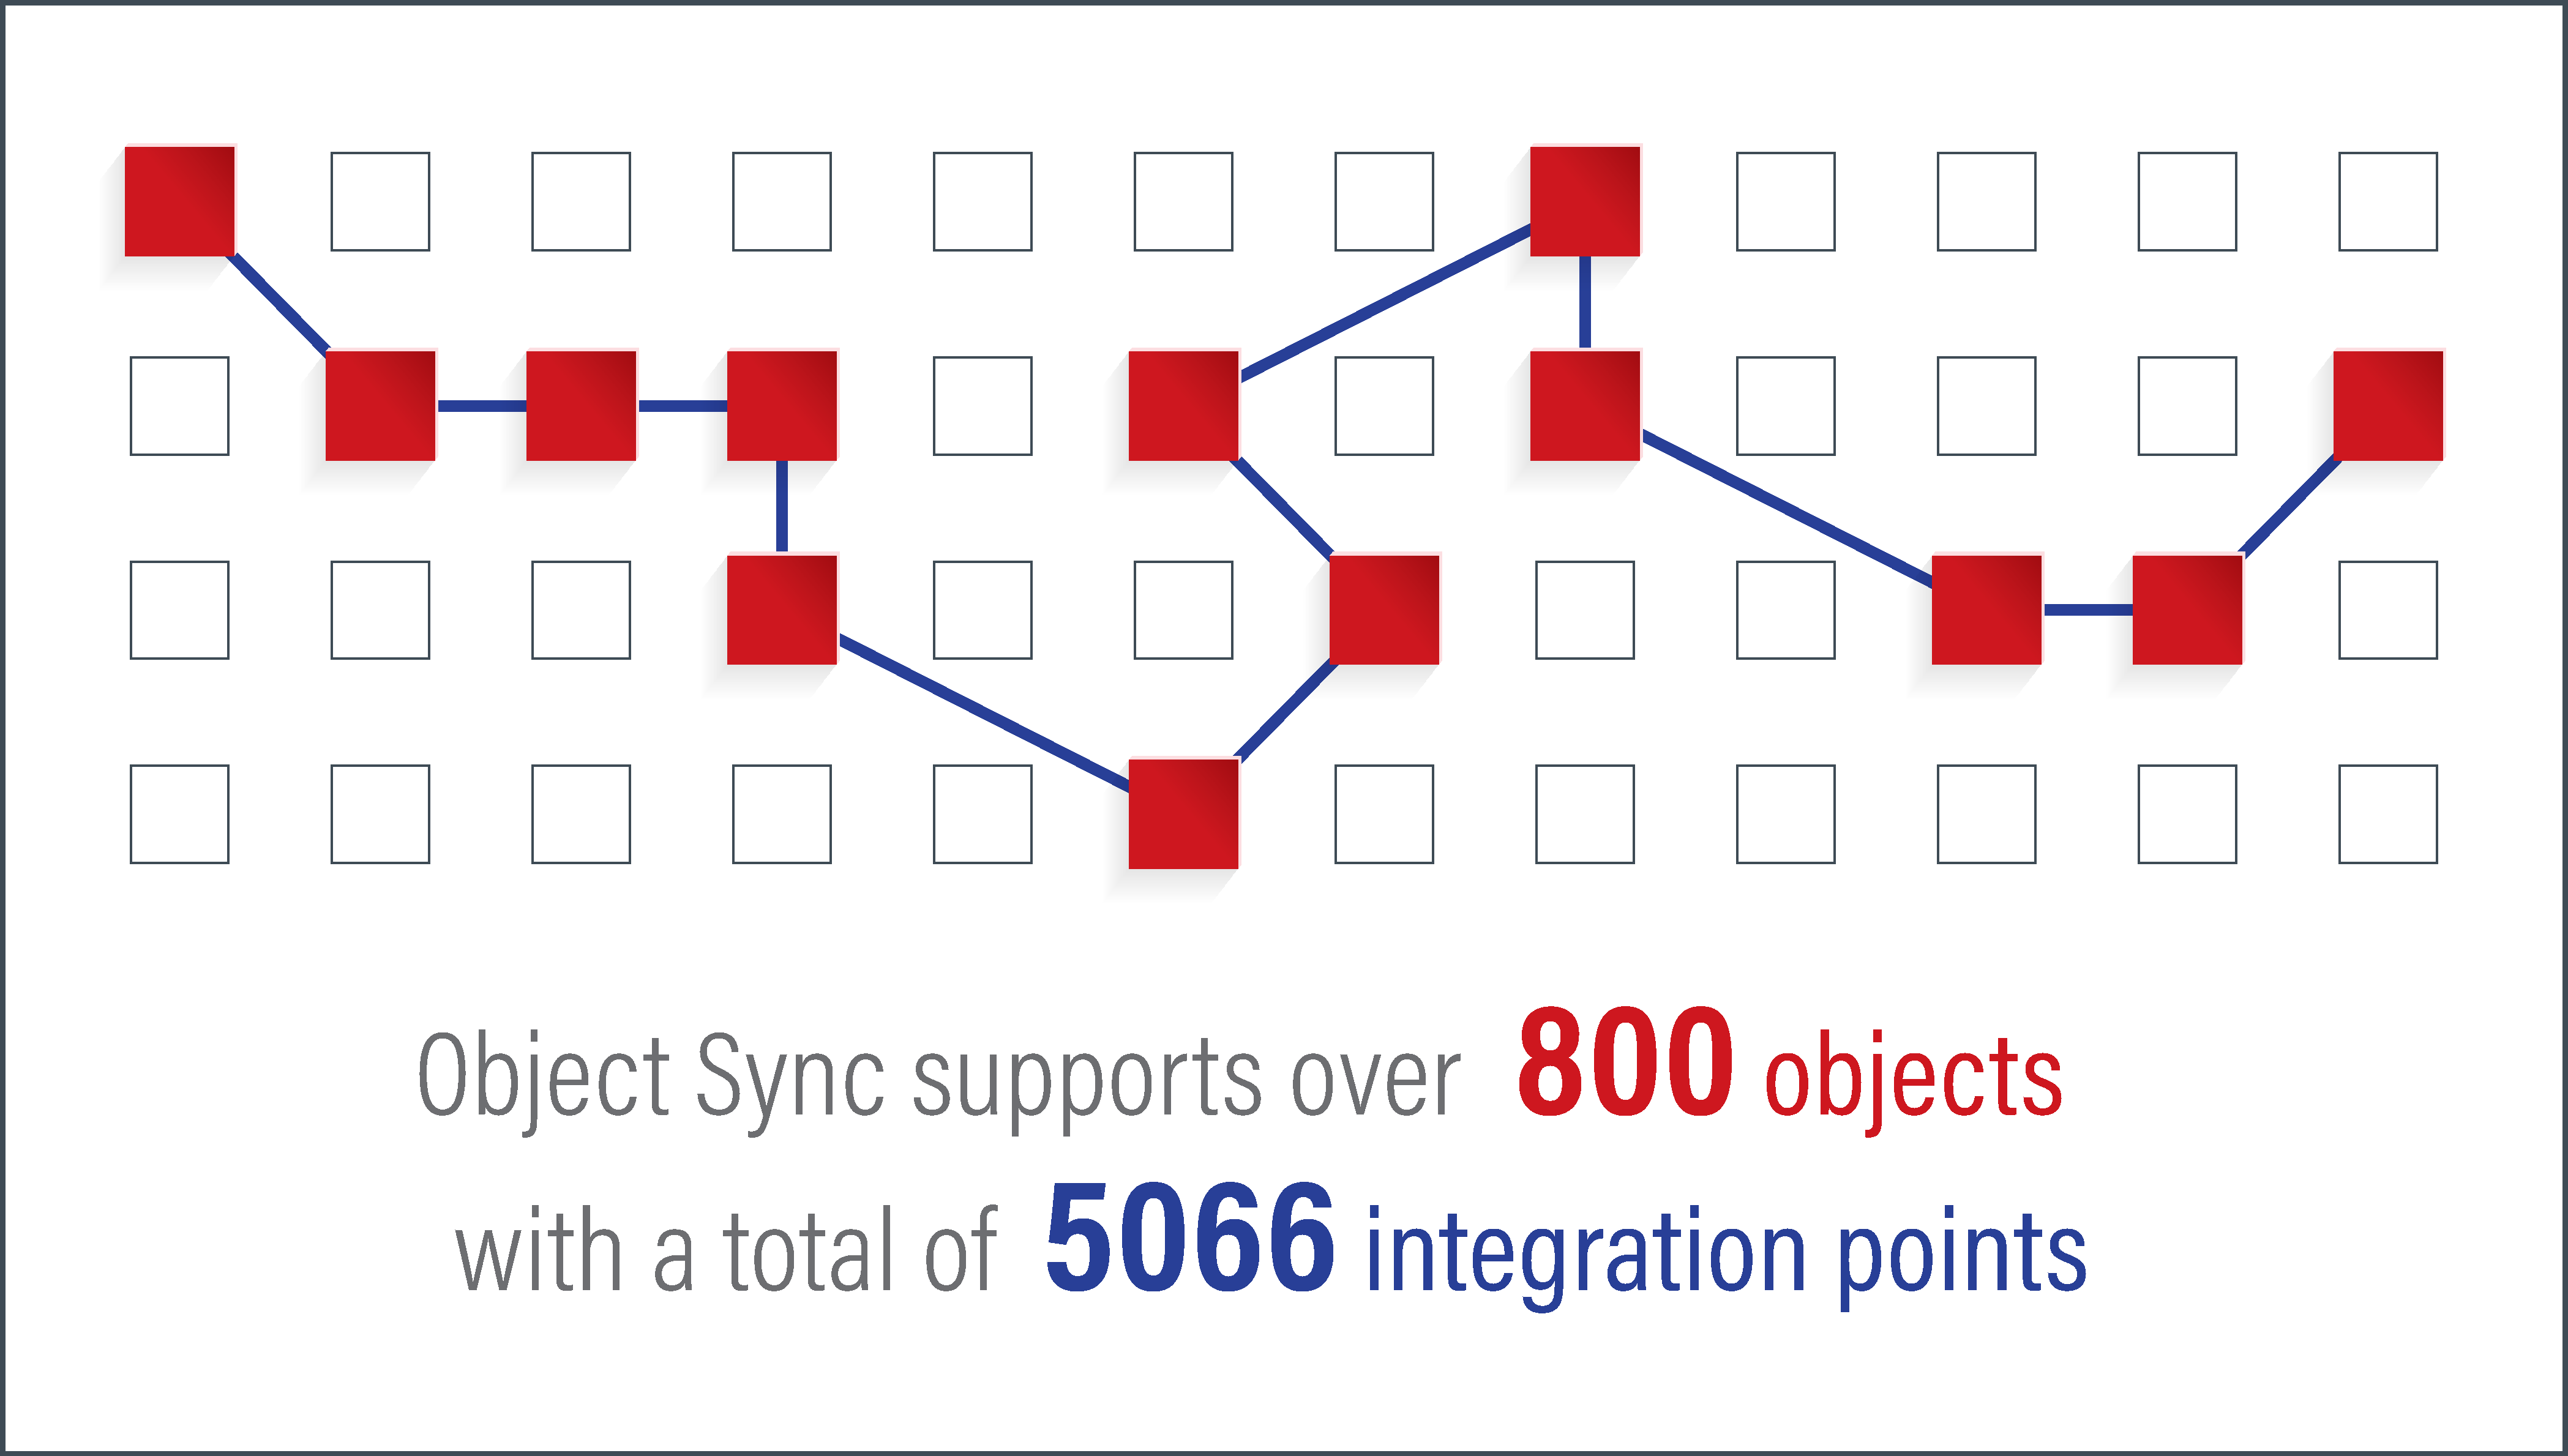 What's different about Object Sync?